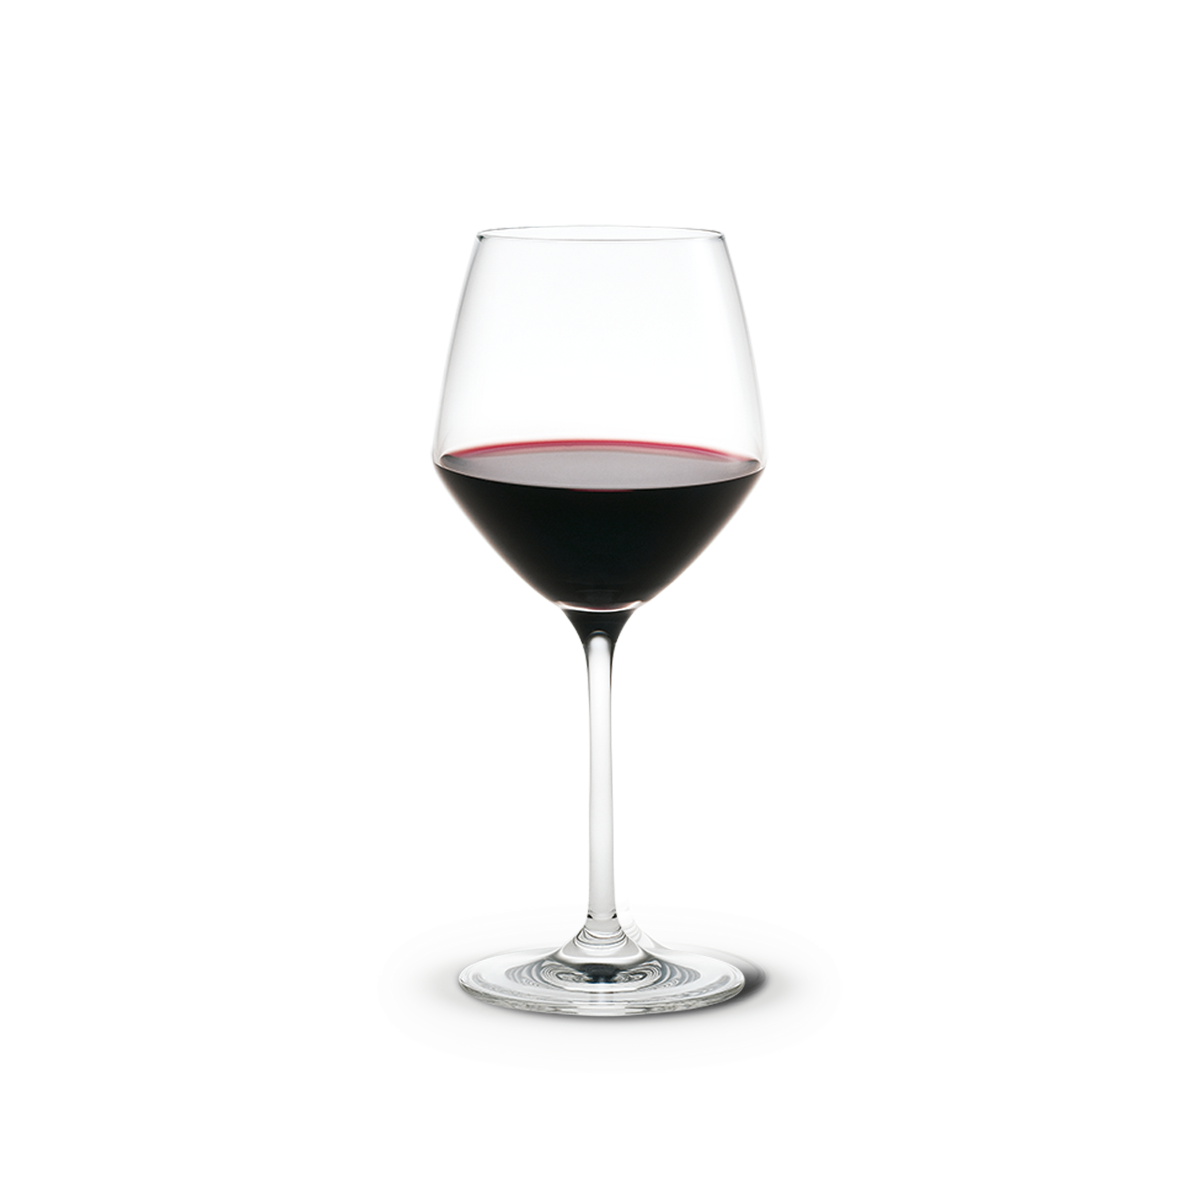 Perfection Red Wine 1 Pcs 43 Cl Perfection Hdpng.com  - Glass Of Wine, Transparent background PNG HD thumbnail